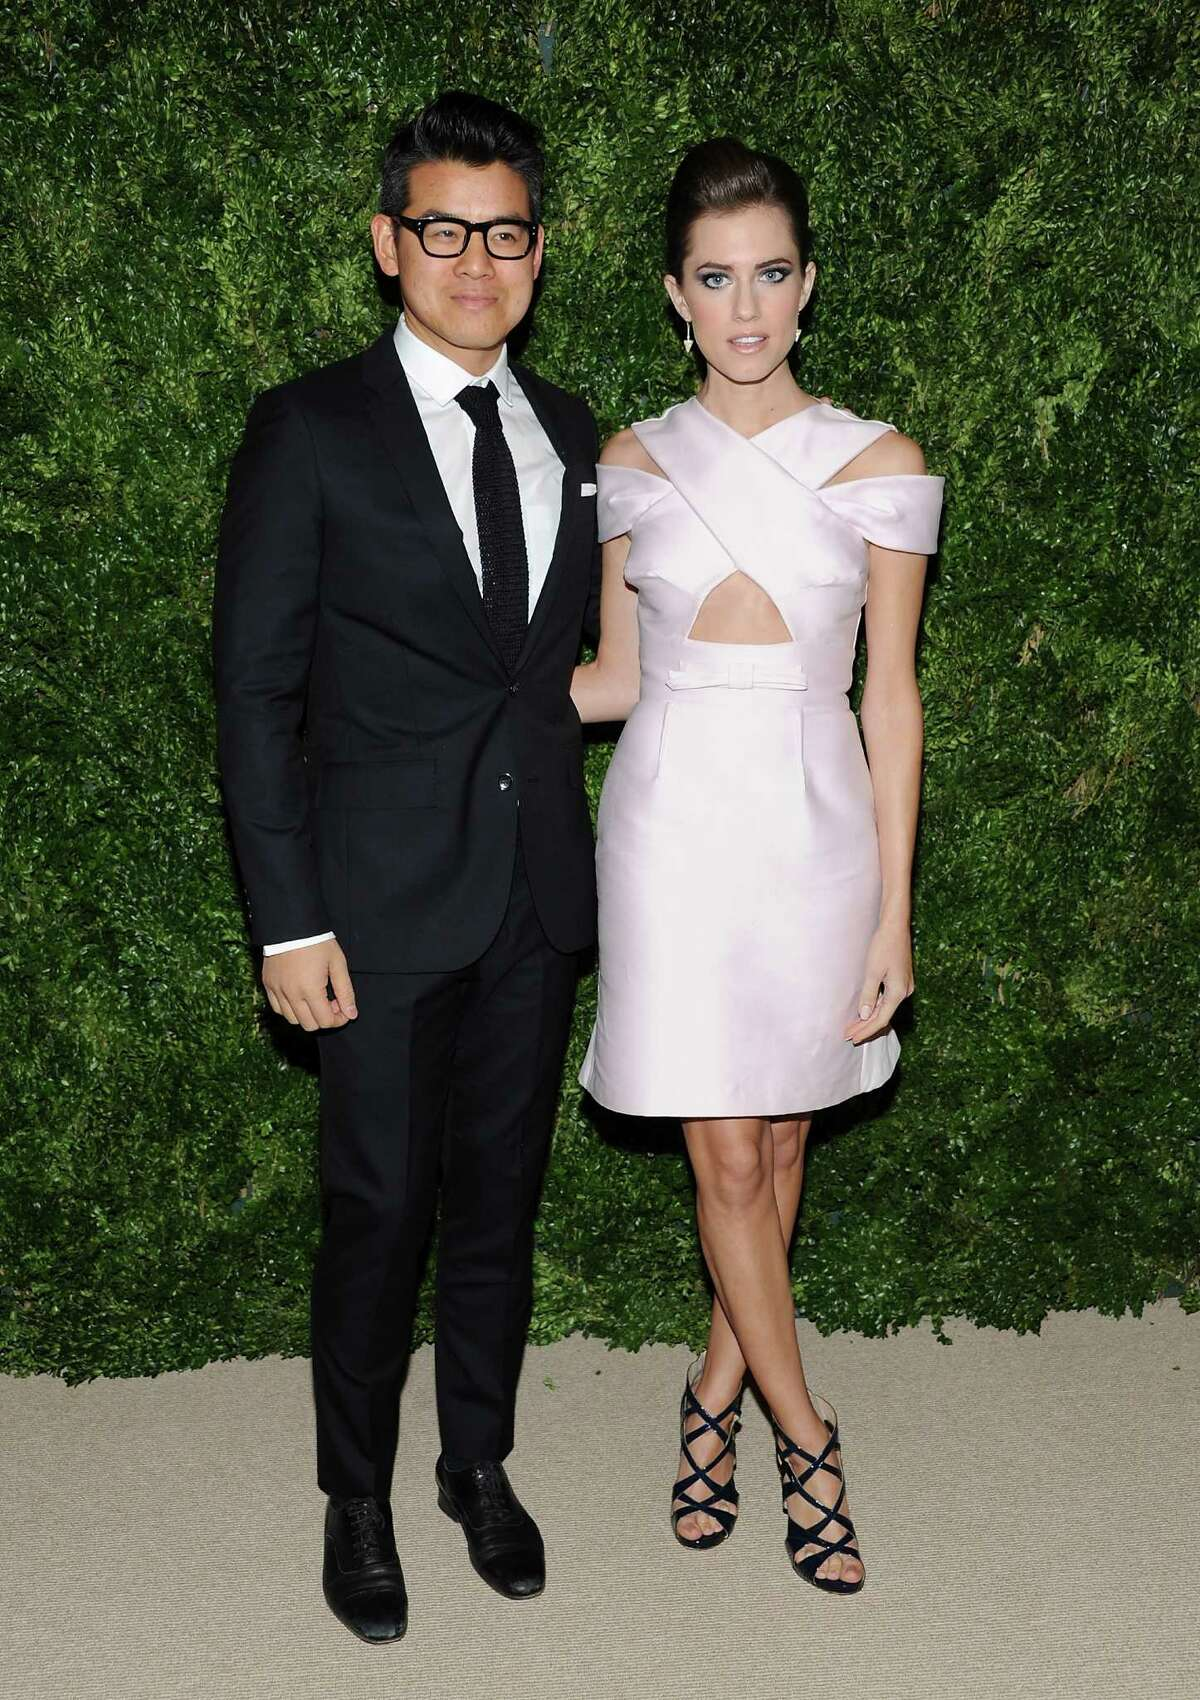 Designer Peter Som and actress Allison Williams attend the 2012 CFDA / Vogue Fashion Fund Awards on Tuesday Nov. 13, 2012 in New York.